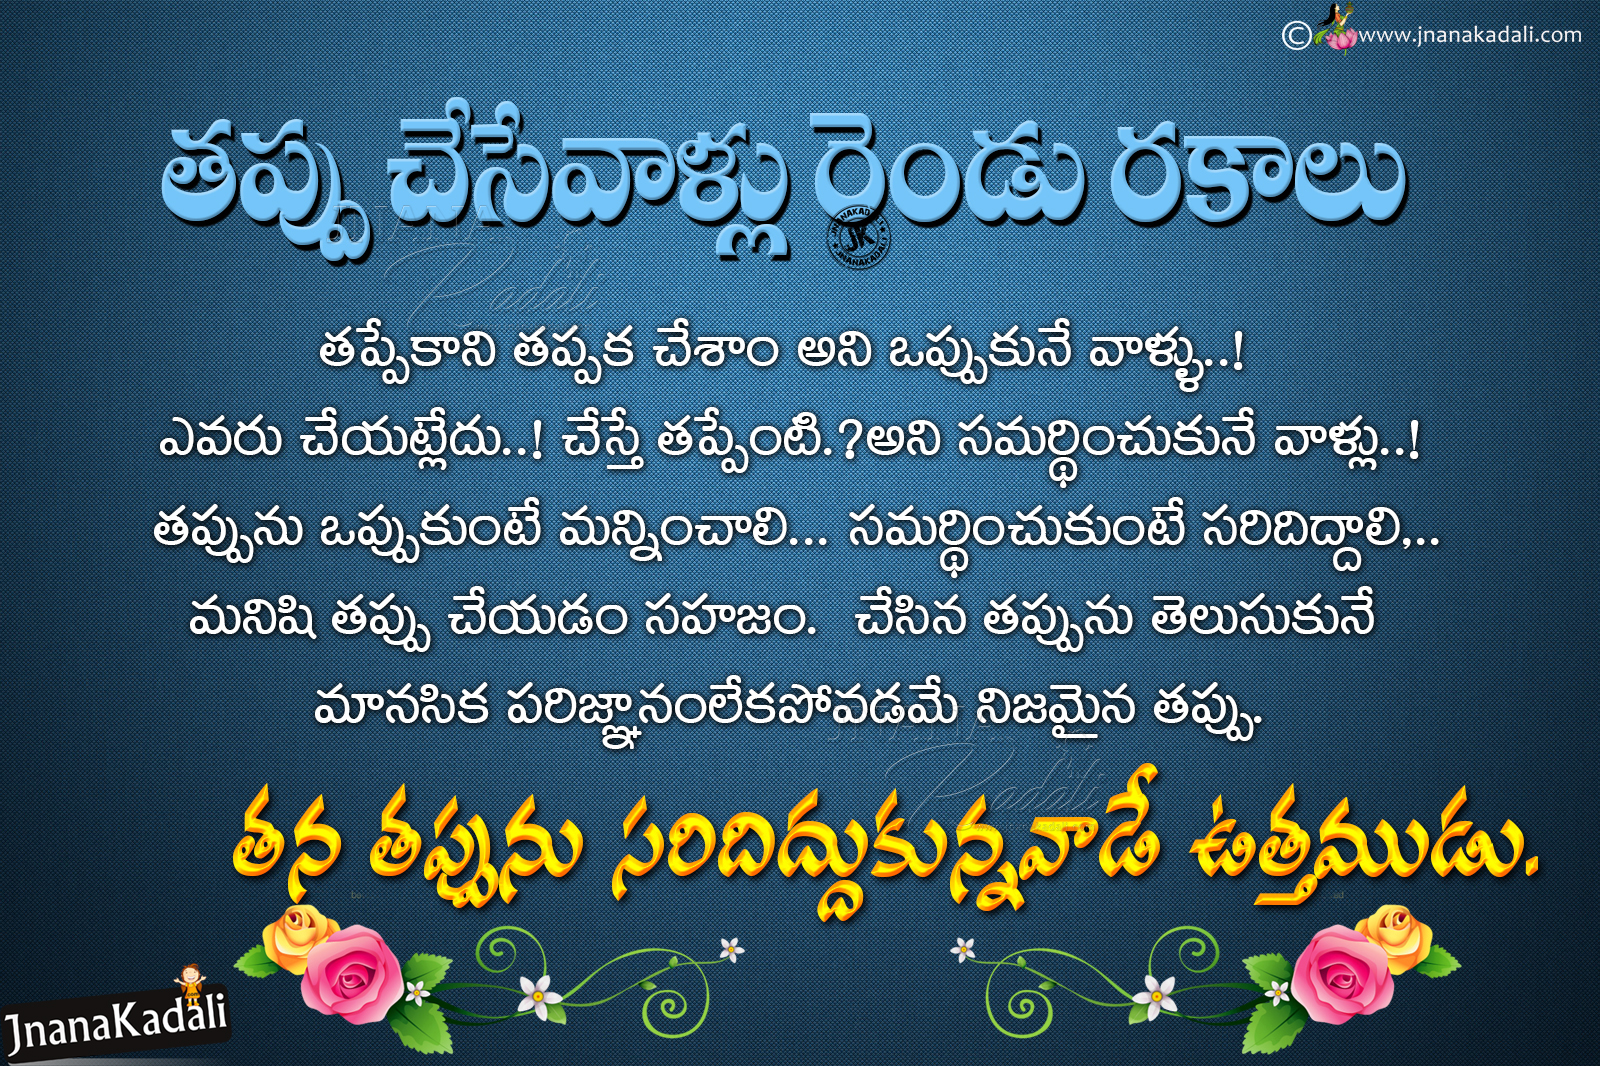 A Beautiful Heart Touching Telugu Quote About Mistakes And